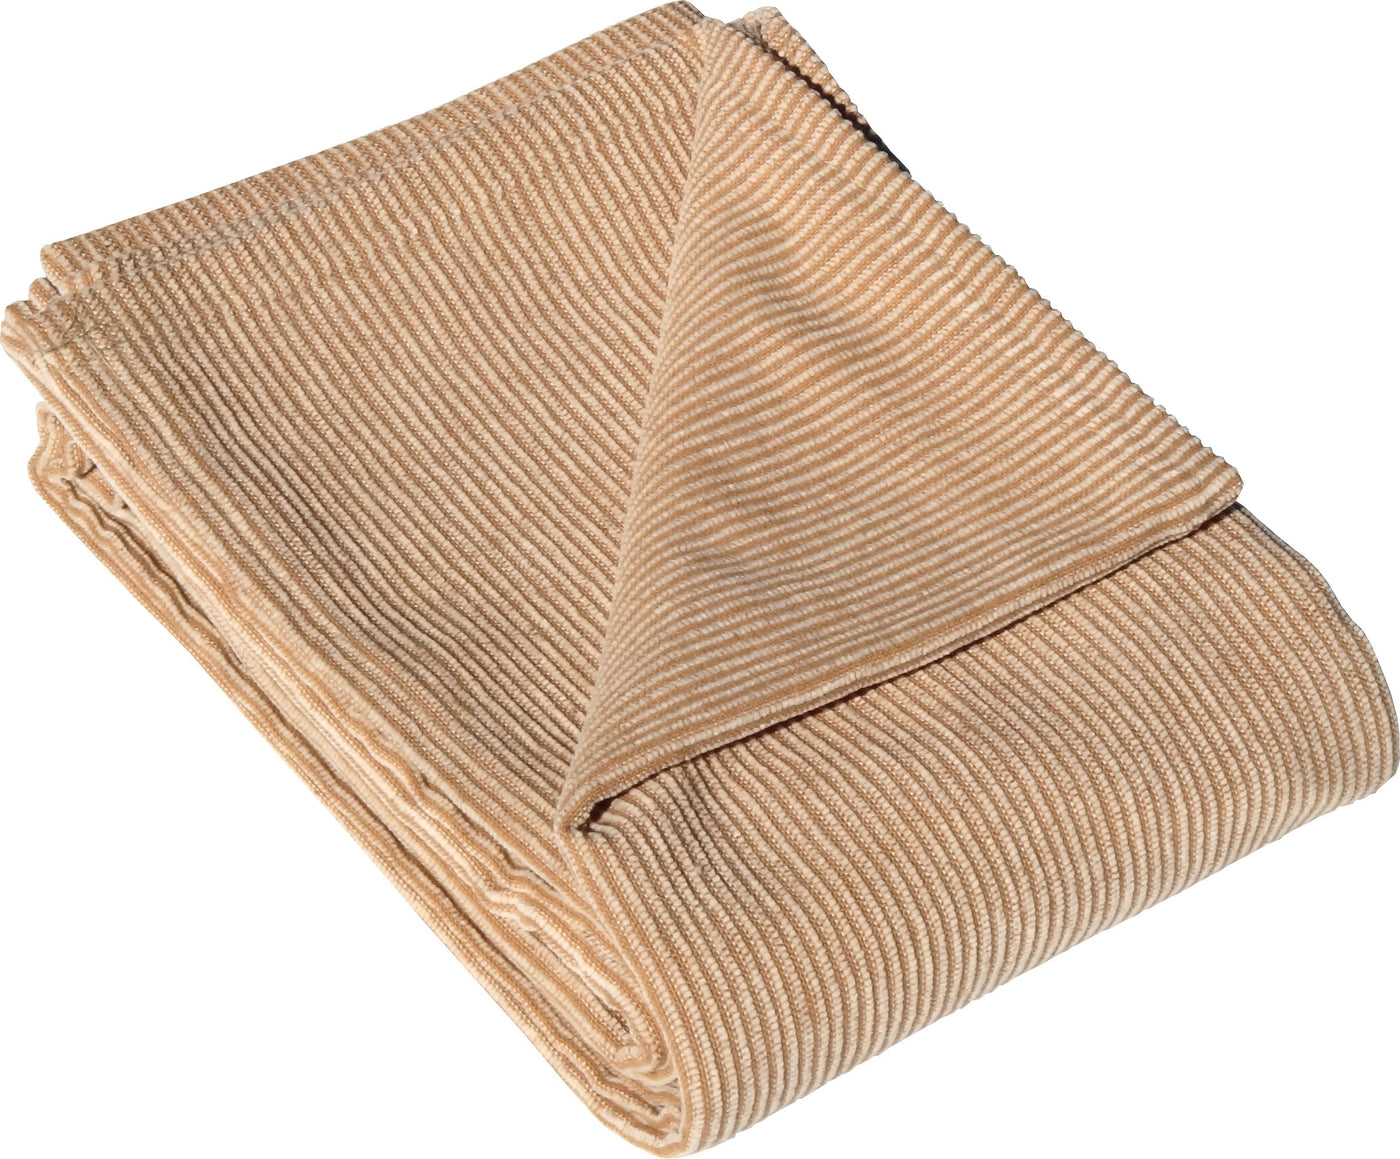 "Striped Brown/Natural Chenille 40 x 56"" Toddler Blanket"